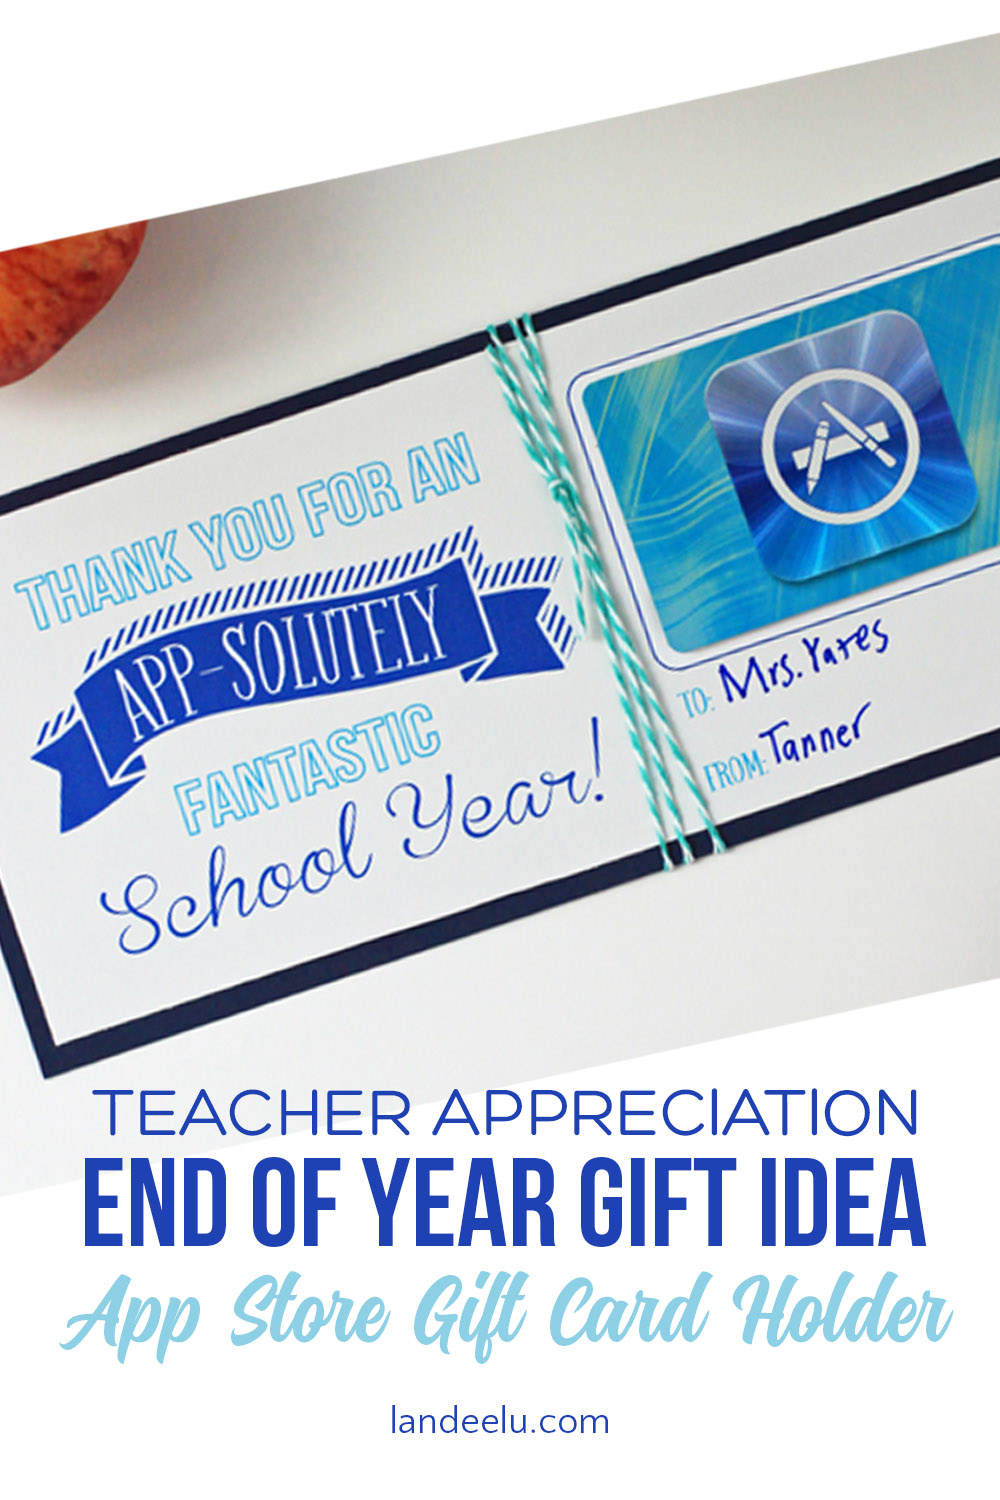 Download and print this darling way to give your child's teacher an App Store gift card! Simple and easy teacher appreciation idea! #teacherappreciation #teachergiftidea #giftcardholder #freeprintabble